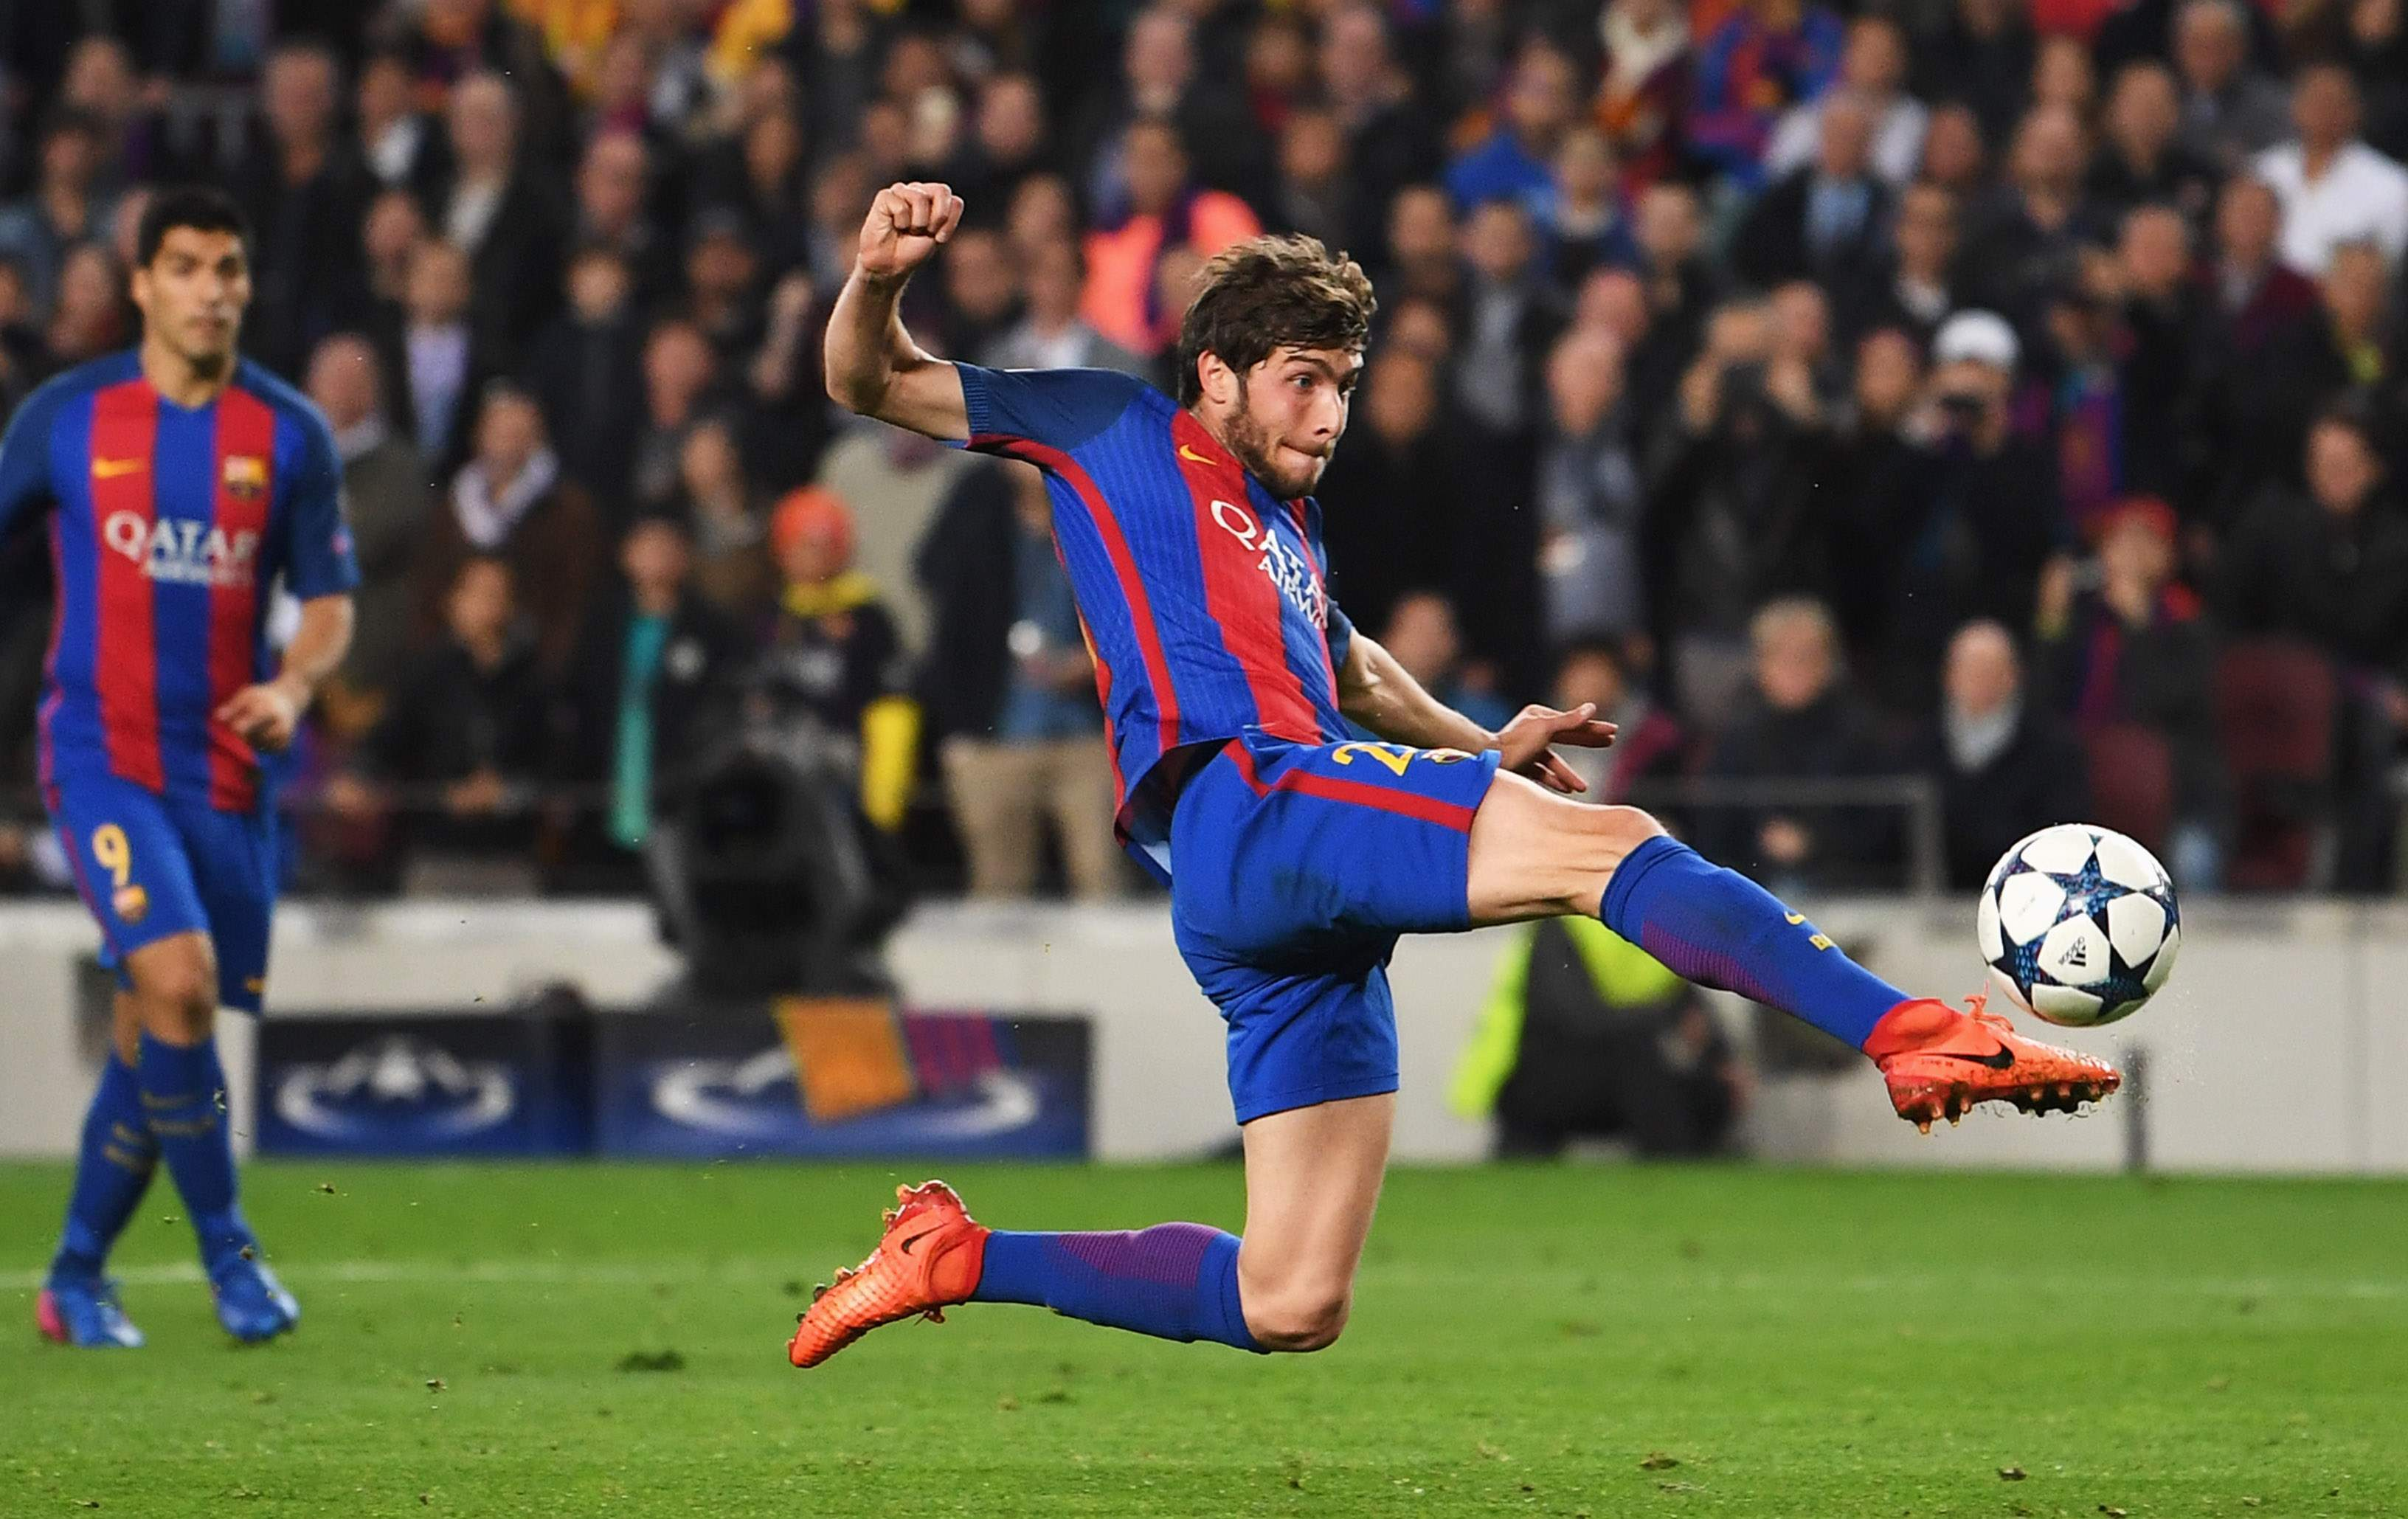 Sergi Roberto – The Bandwagon Everyone Is Jumping On